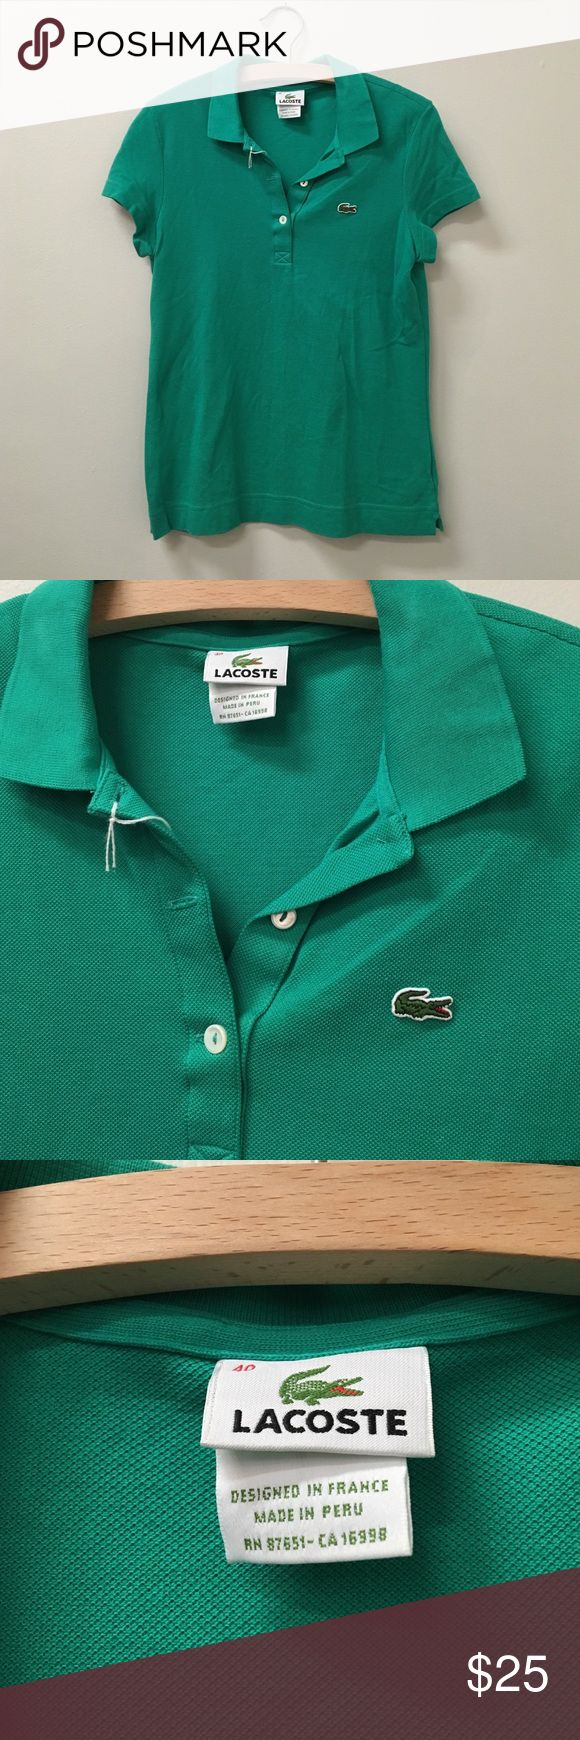 Green Lacoste polo shirt small Green polo shirt by Lacoste size 40 on tag - fits like size small/extra small Lacoste Tops Tees - Short Sleeve